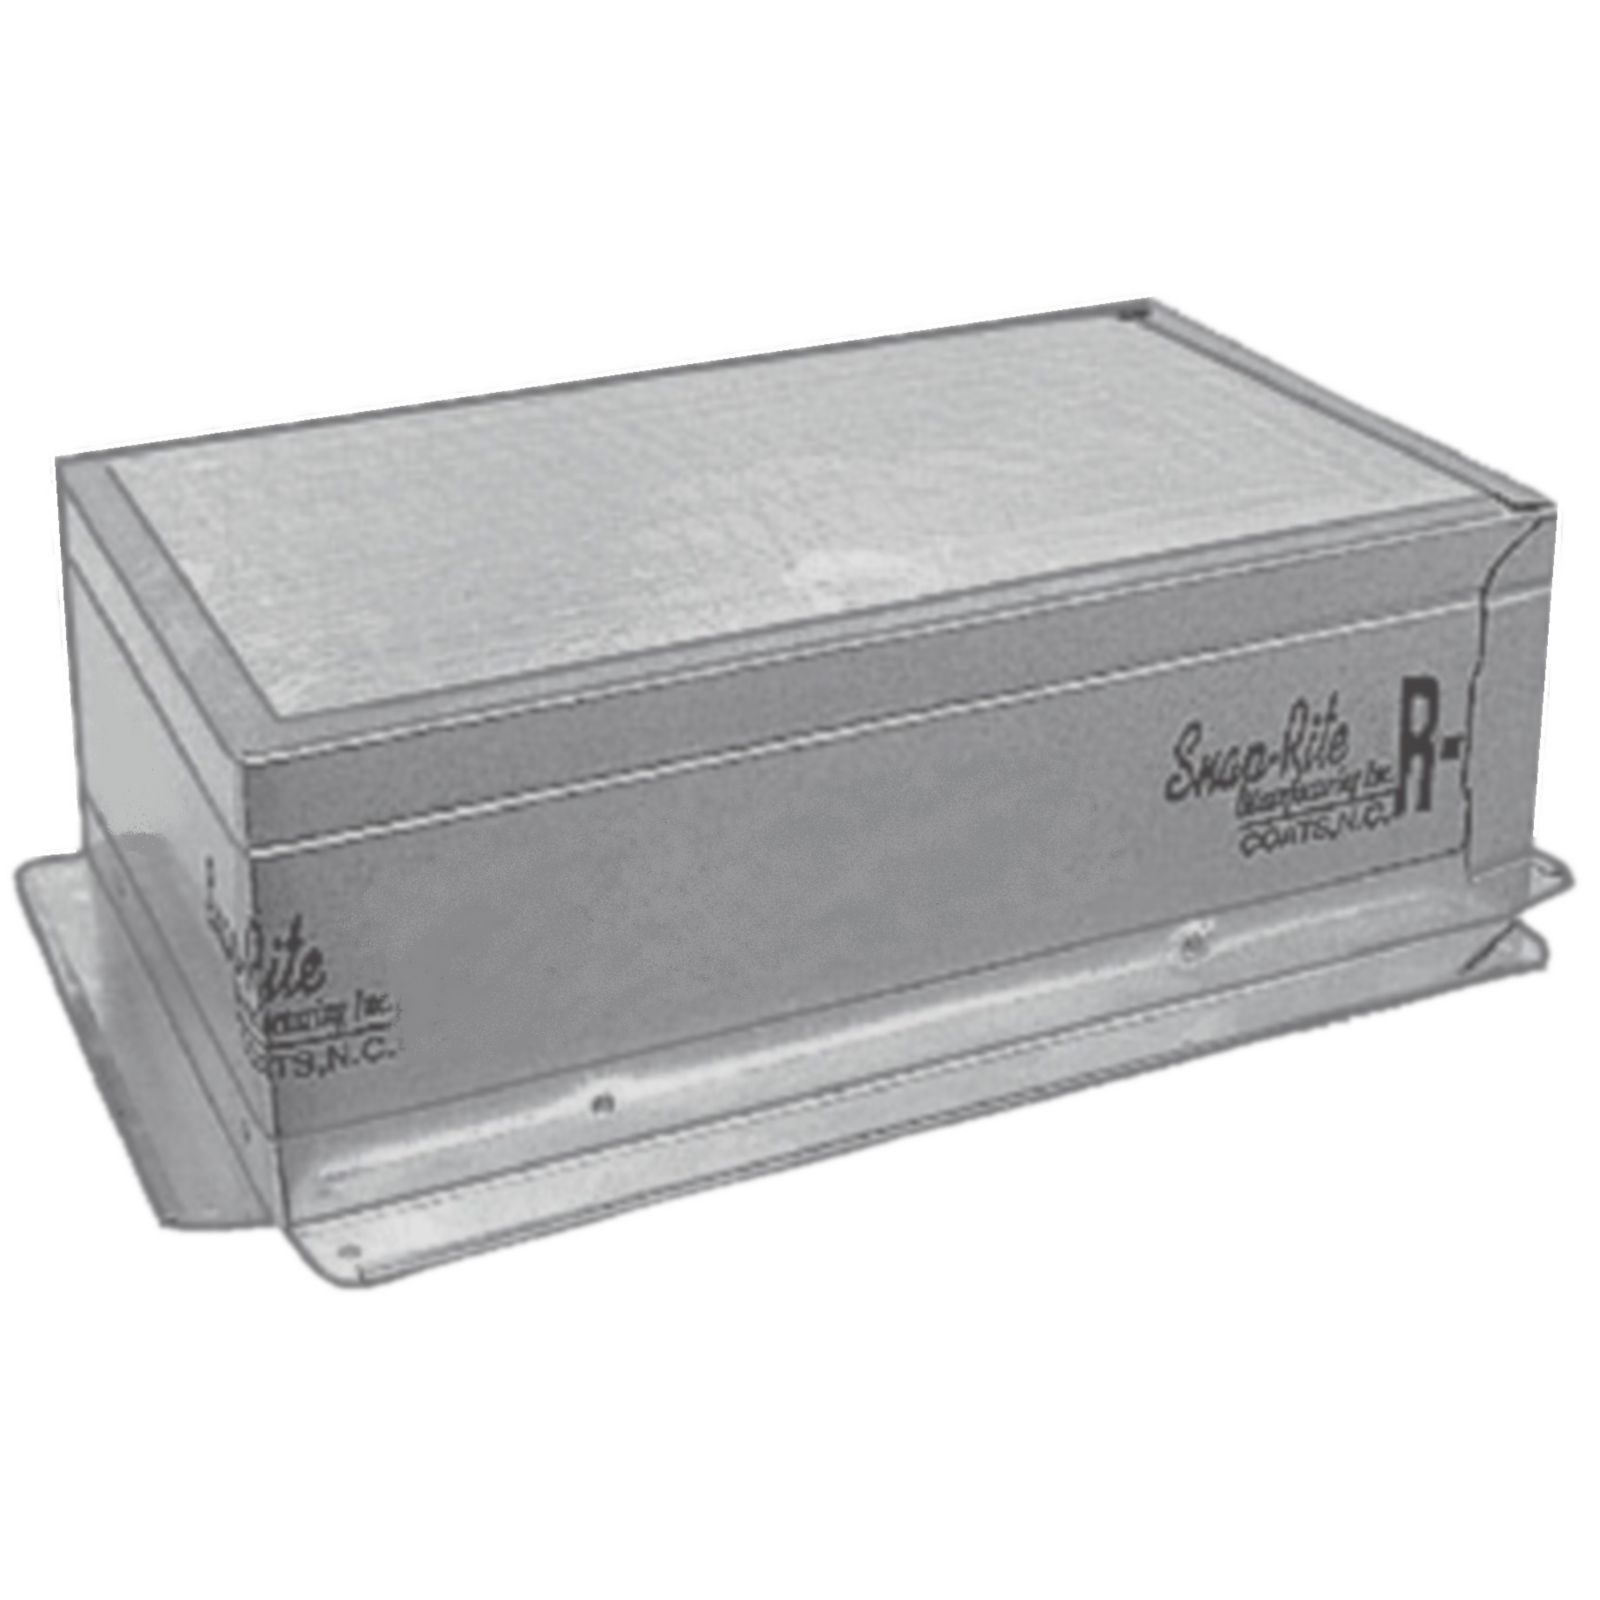 "Snap-Rite 10X10-3800F8 - Foil Top Insulated Register Box With Flange, 10"" x 10"" - R8"